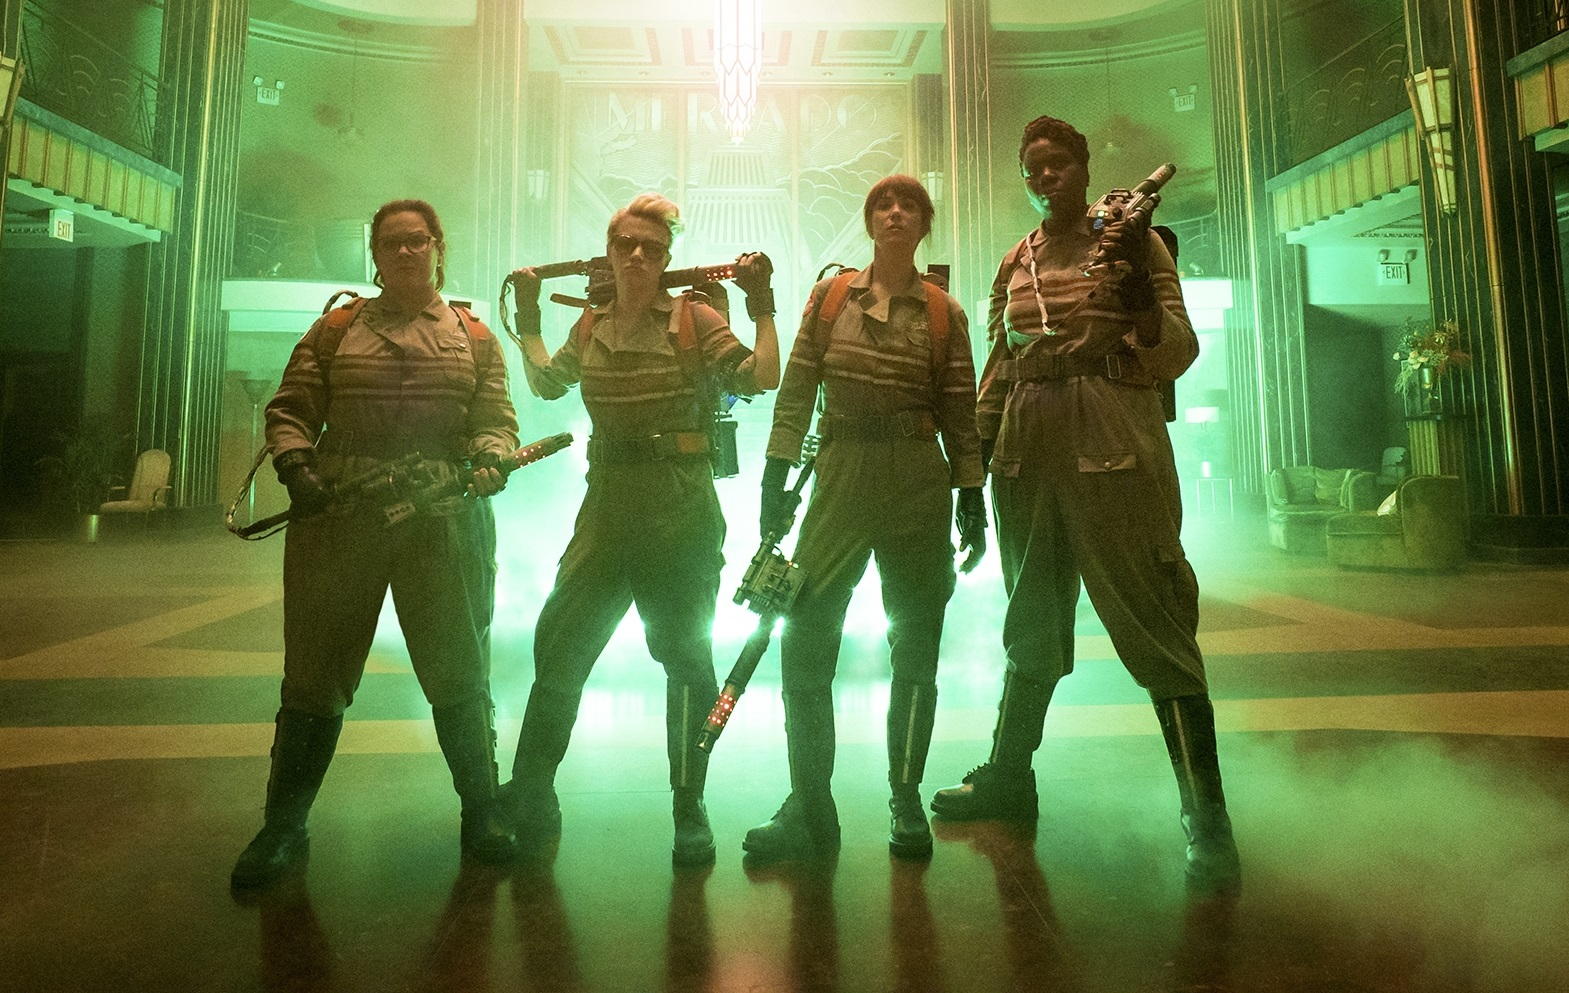 Caption: Melissa McCarthy, Kate McKinnon, Kristen Wiig and Leslie Jones in 'Ghostbusters'